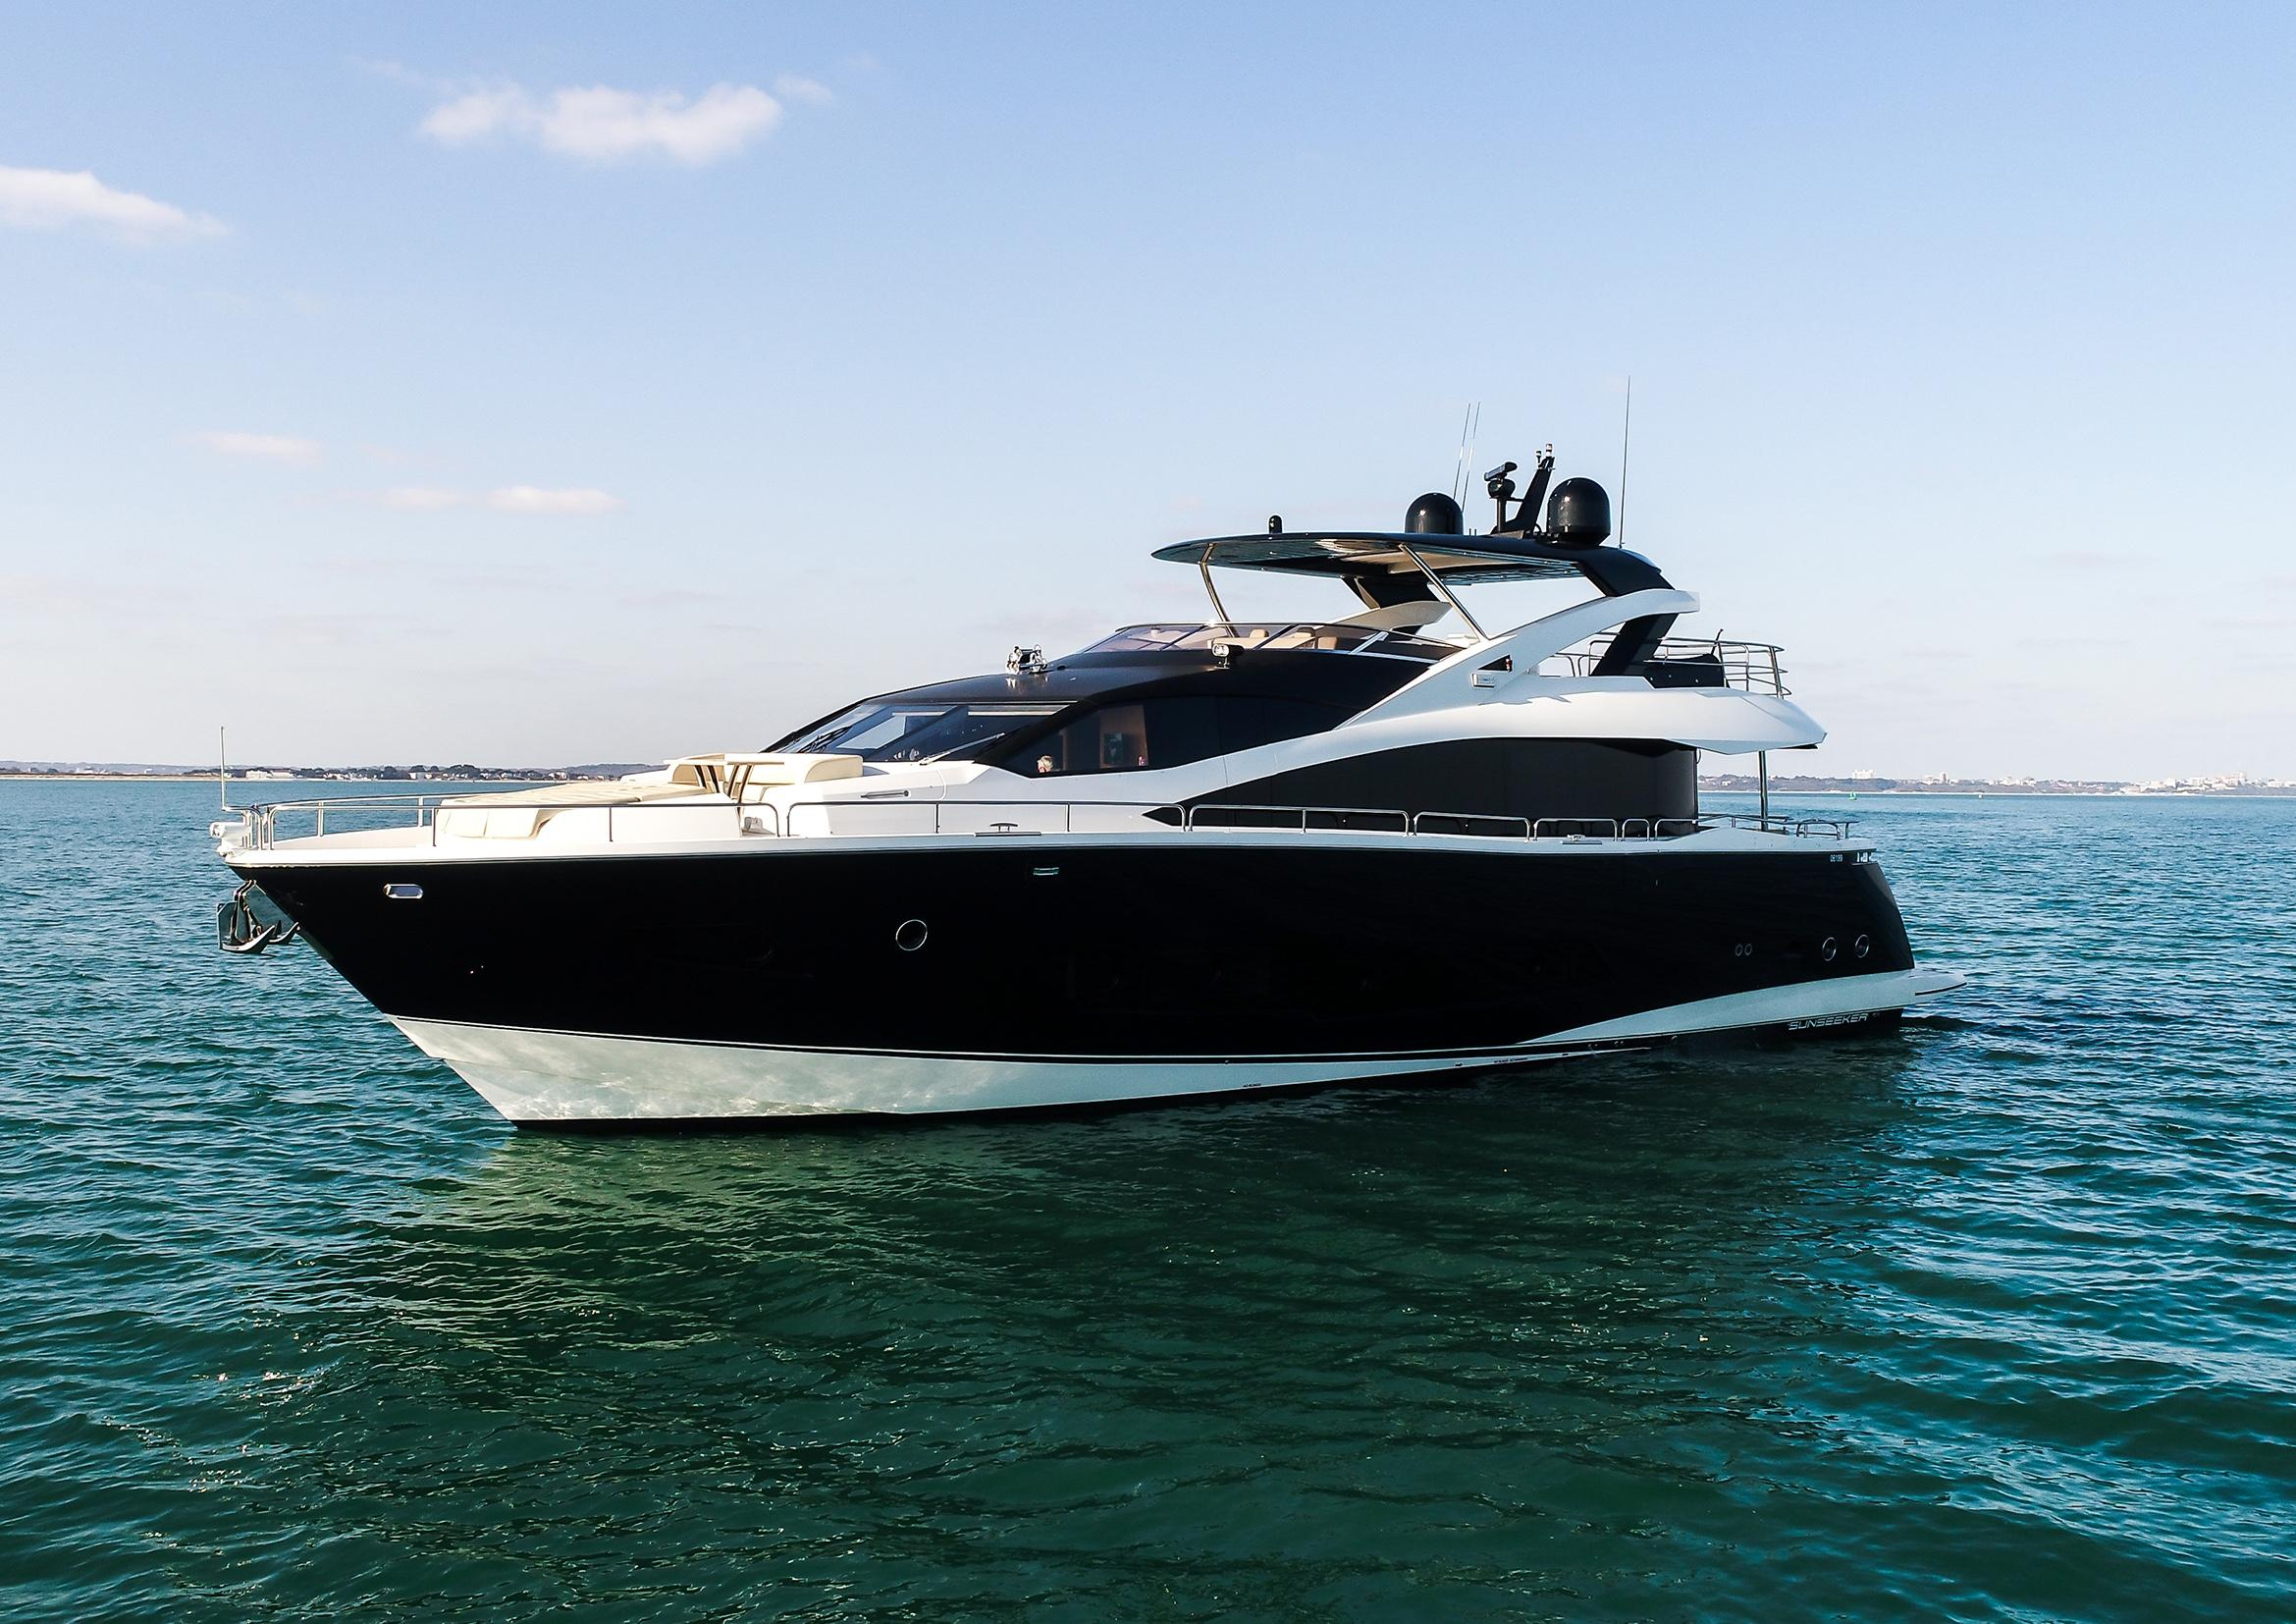 Amerikanische Küche Definition 2016 Sunseeker 86 Yacht Power New And Used Boats For Sale